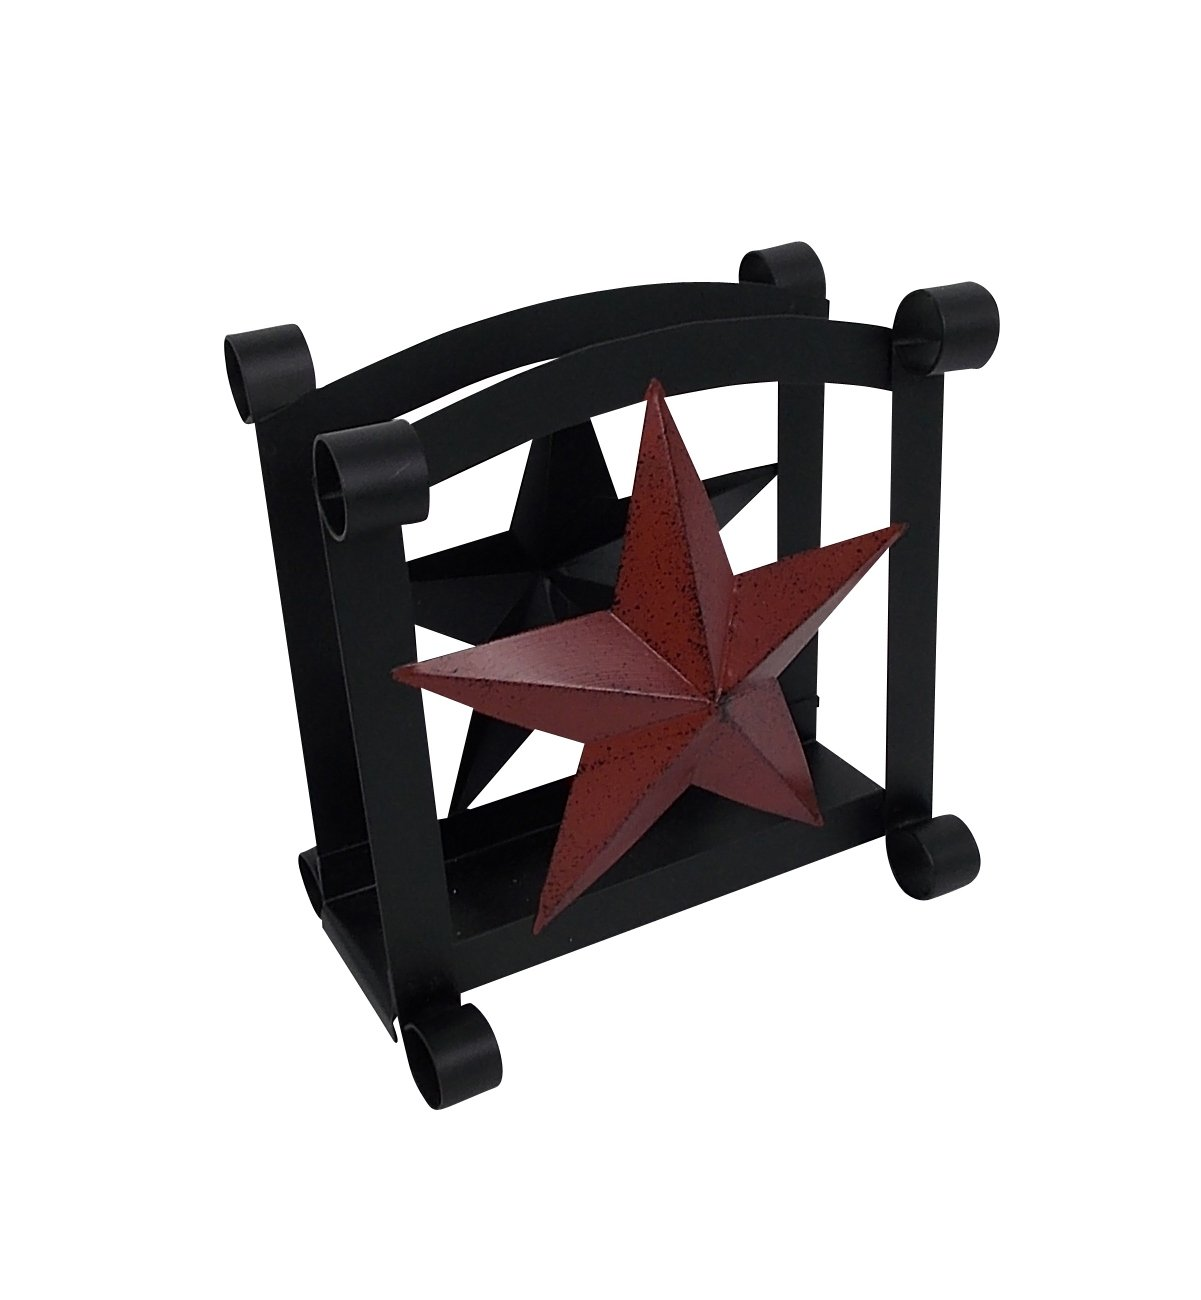 Craft Outlet Star Tissue Holder, Black, 6.5 x 6.5-Inch Craft Outlet Inc T1299